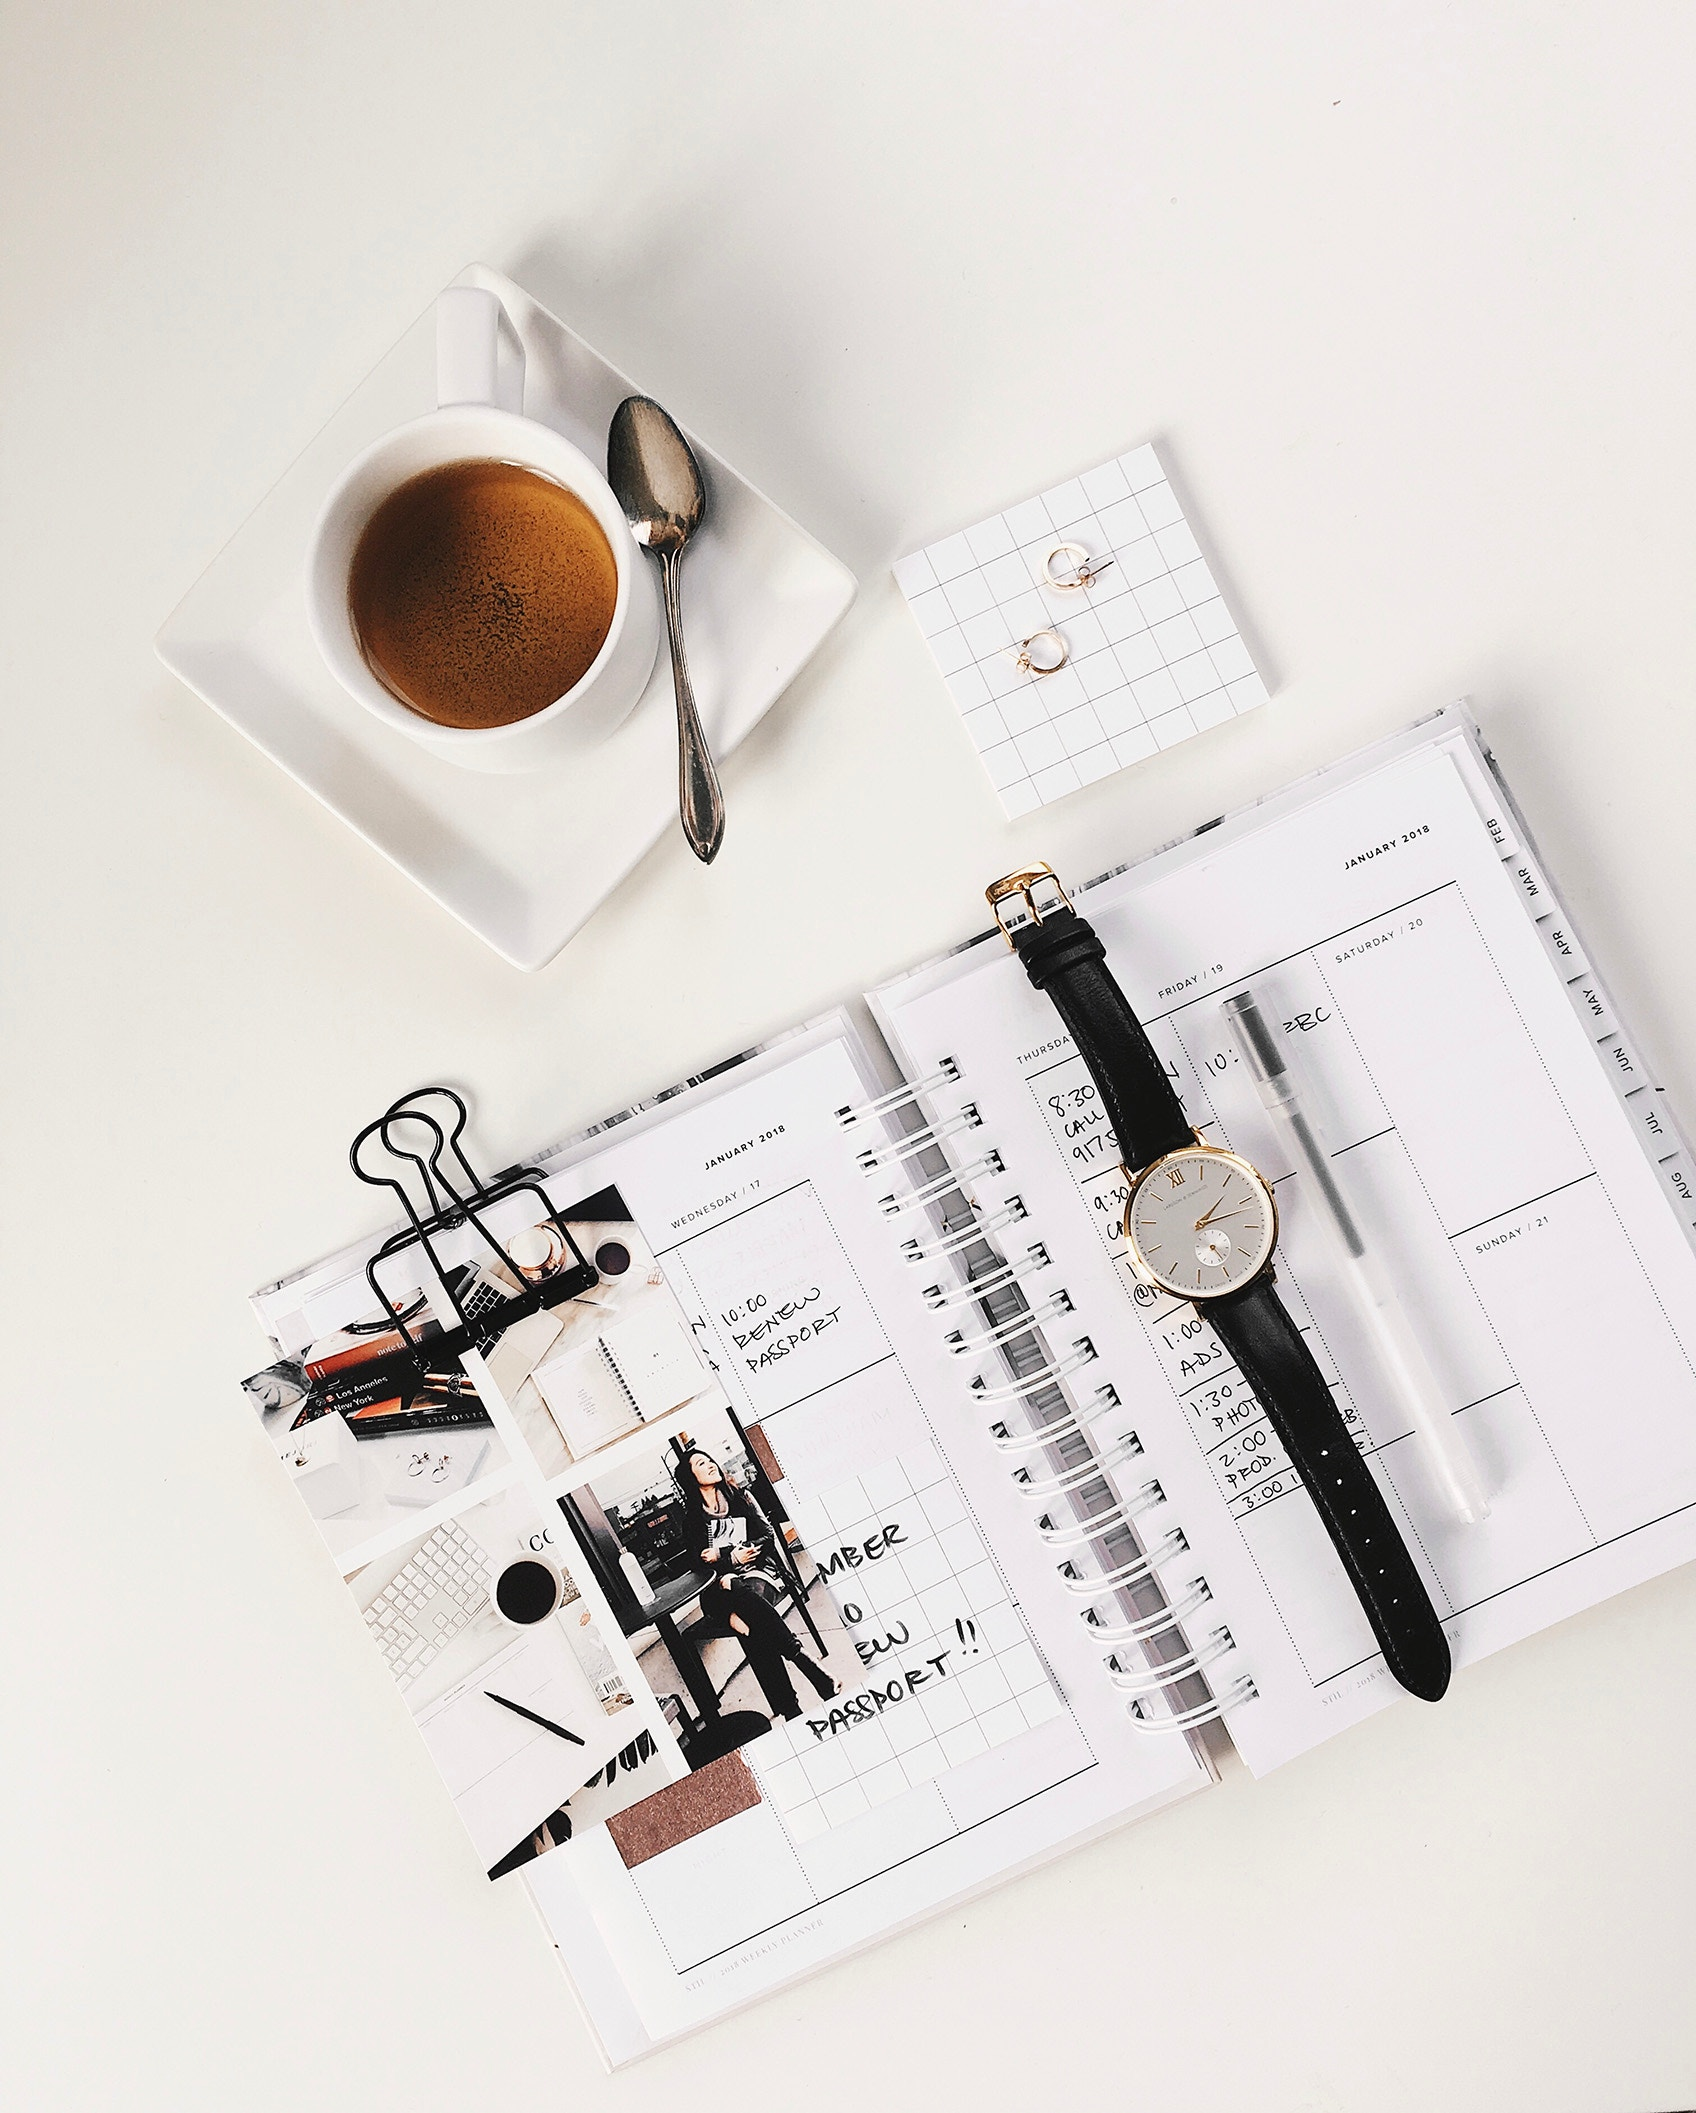 human, diary and a watch